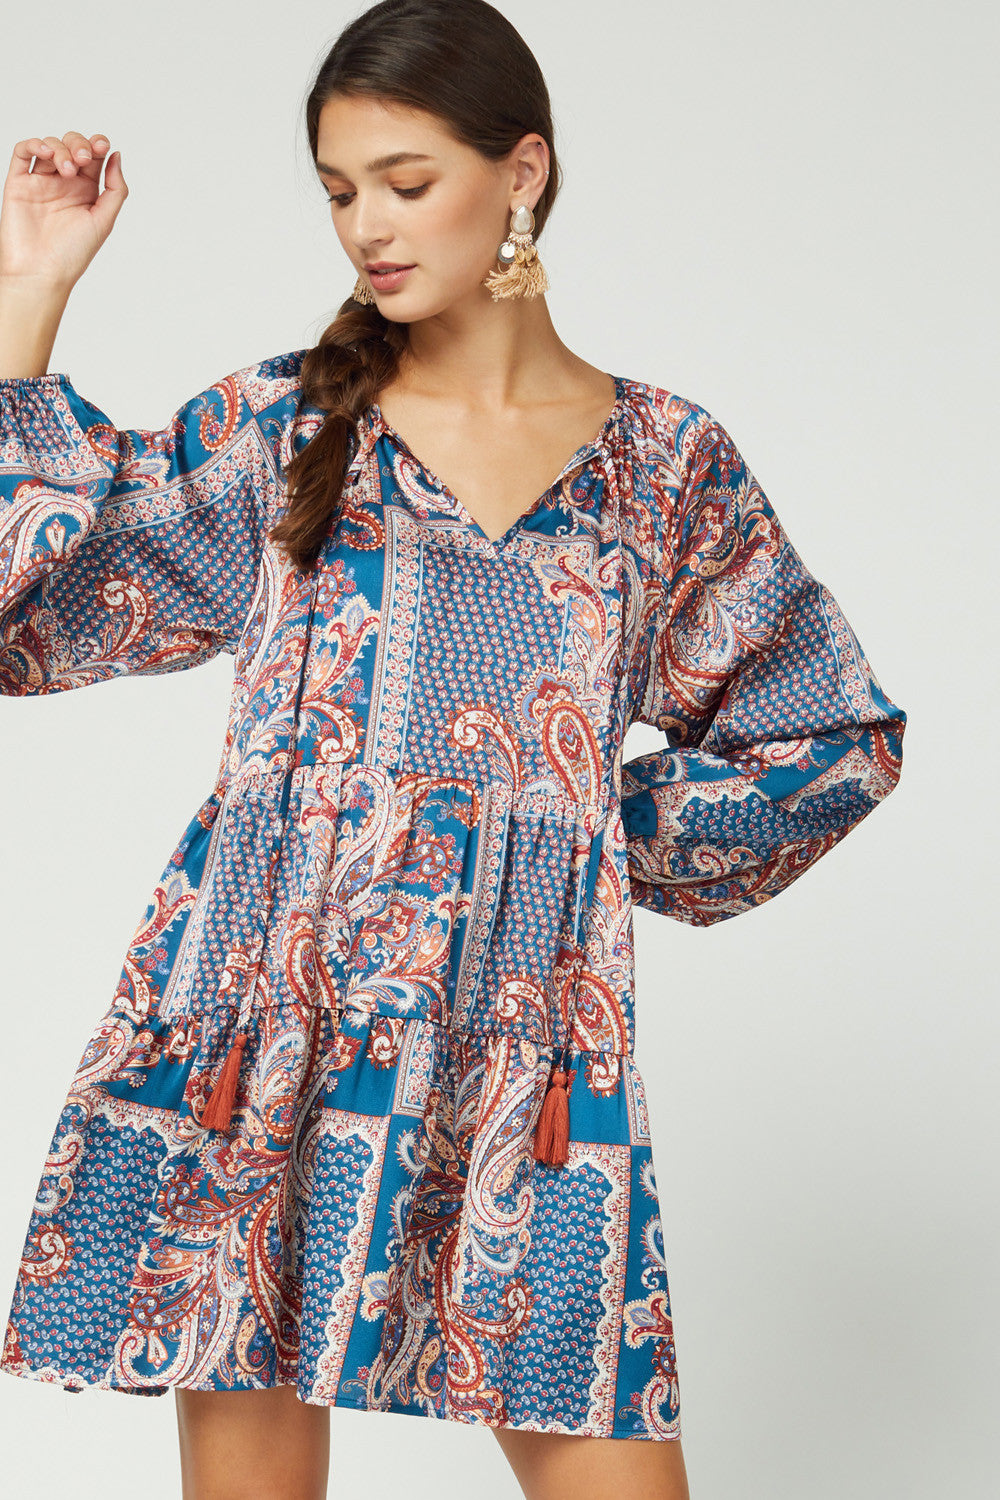 Mixed Print Boho Baby Doll Dress